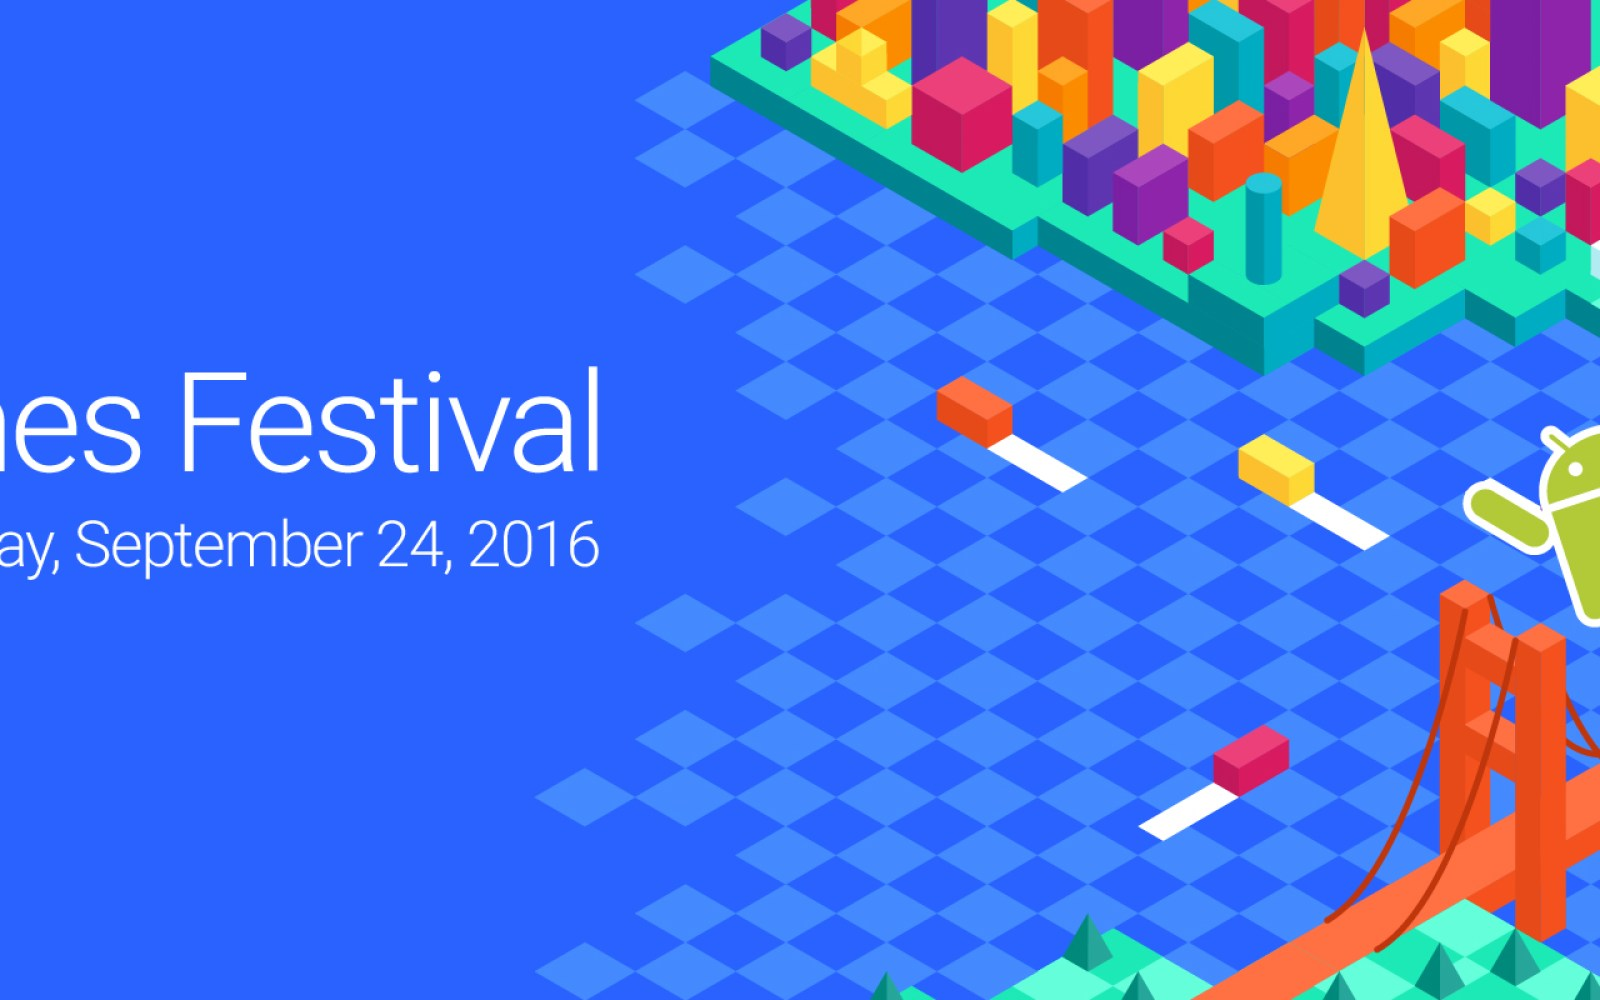 Google announces 30 games to be exhibited at Indie Games Festival on September 24th in San Francisco